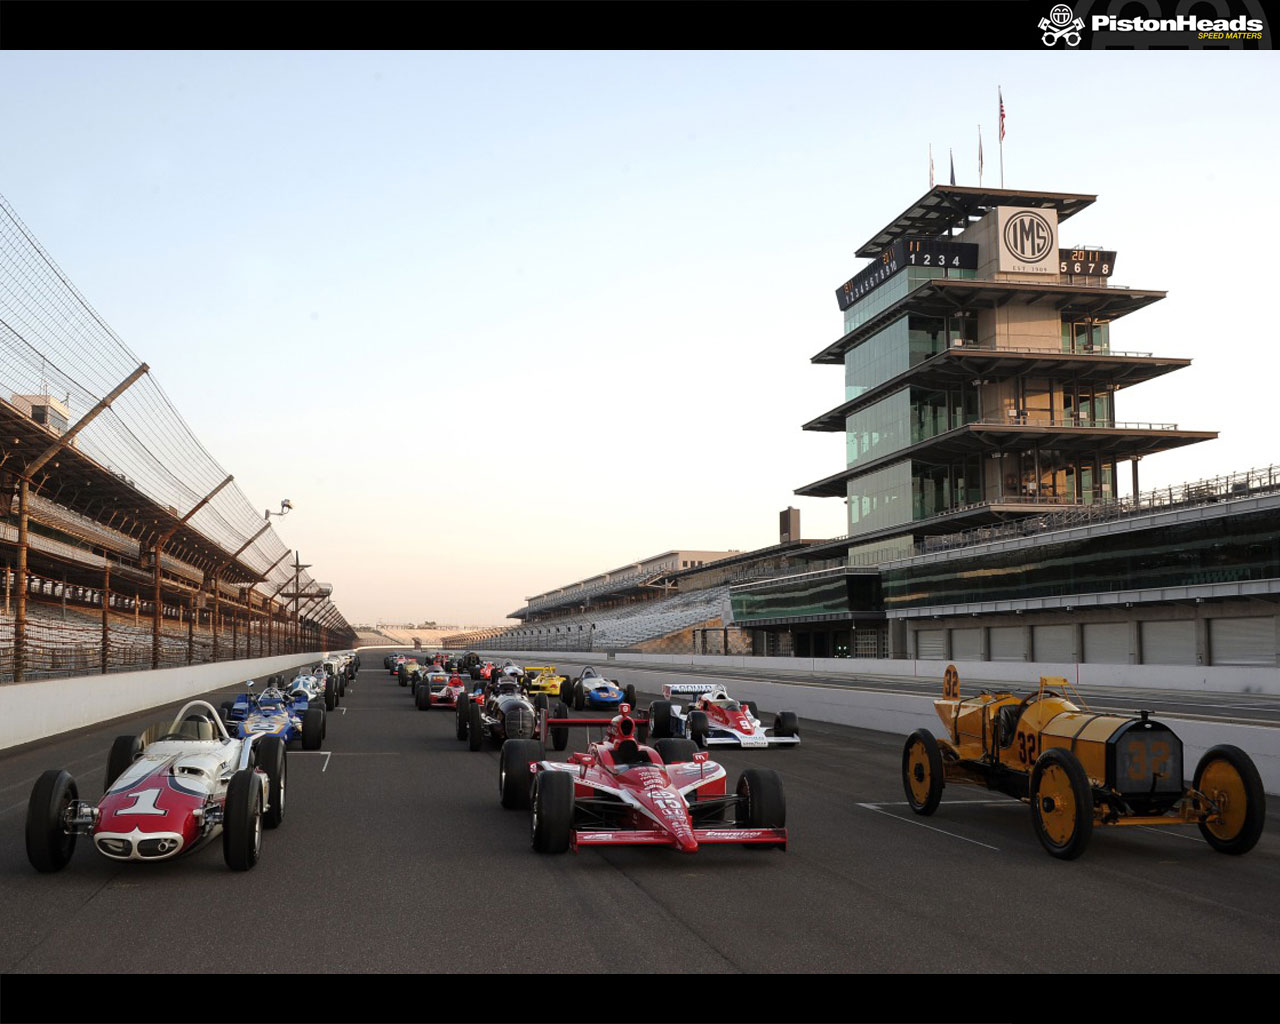 Pic Of The Week Indy 500 Historic Grid PistonHeads 1280x1024